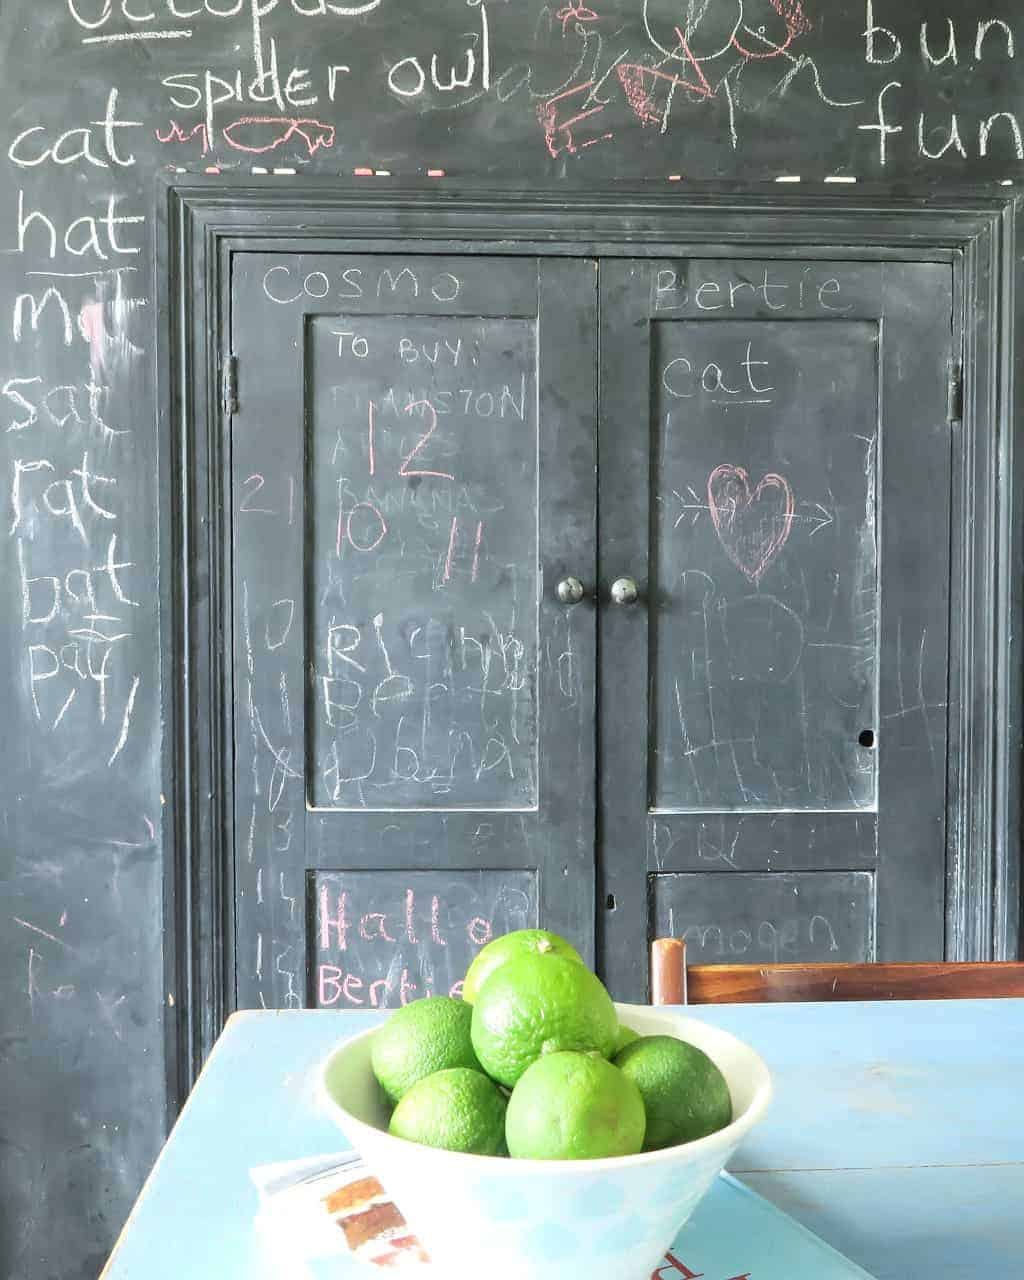 New Tiles and Wenge Worktops {A brand new look for our old kitchen} by The Twinkle Diaries